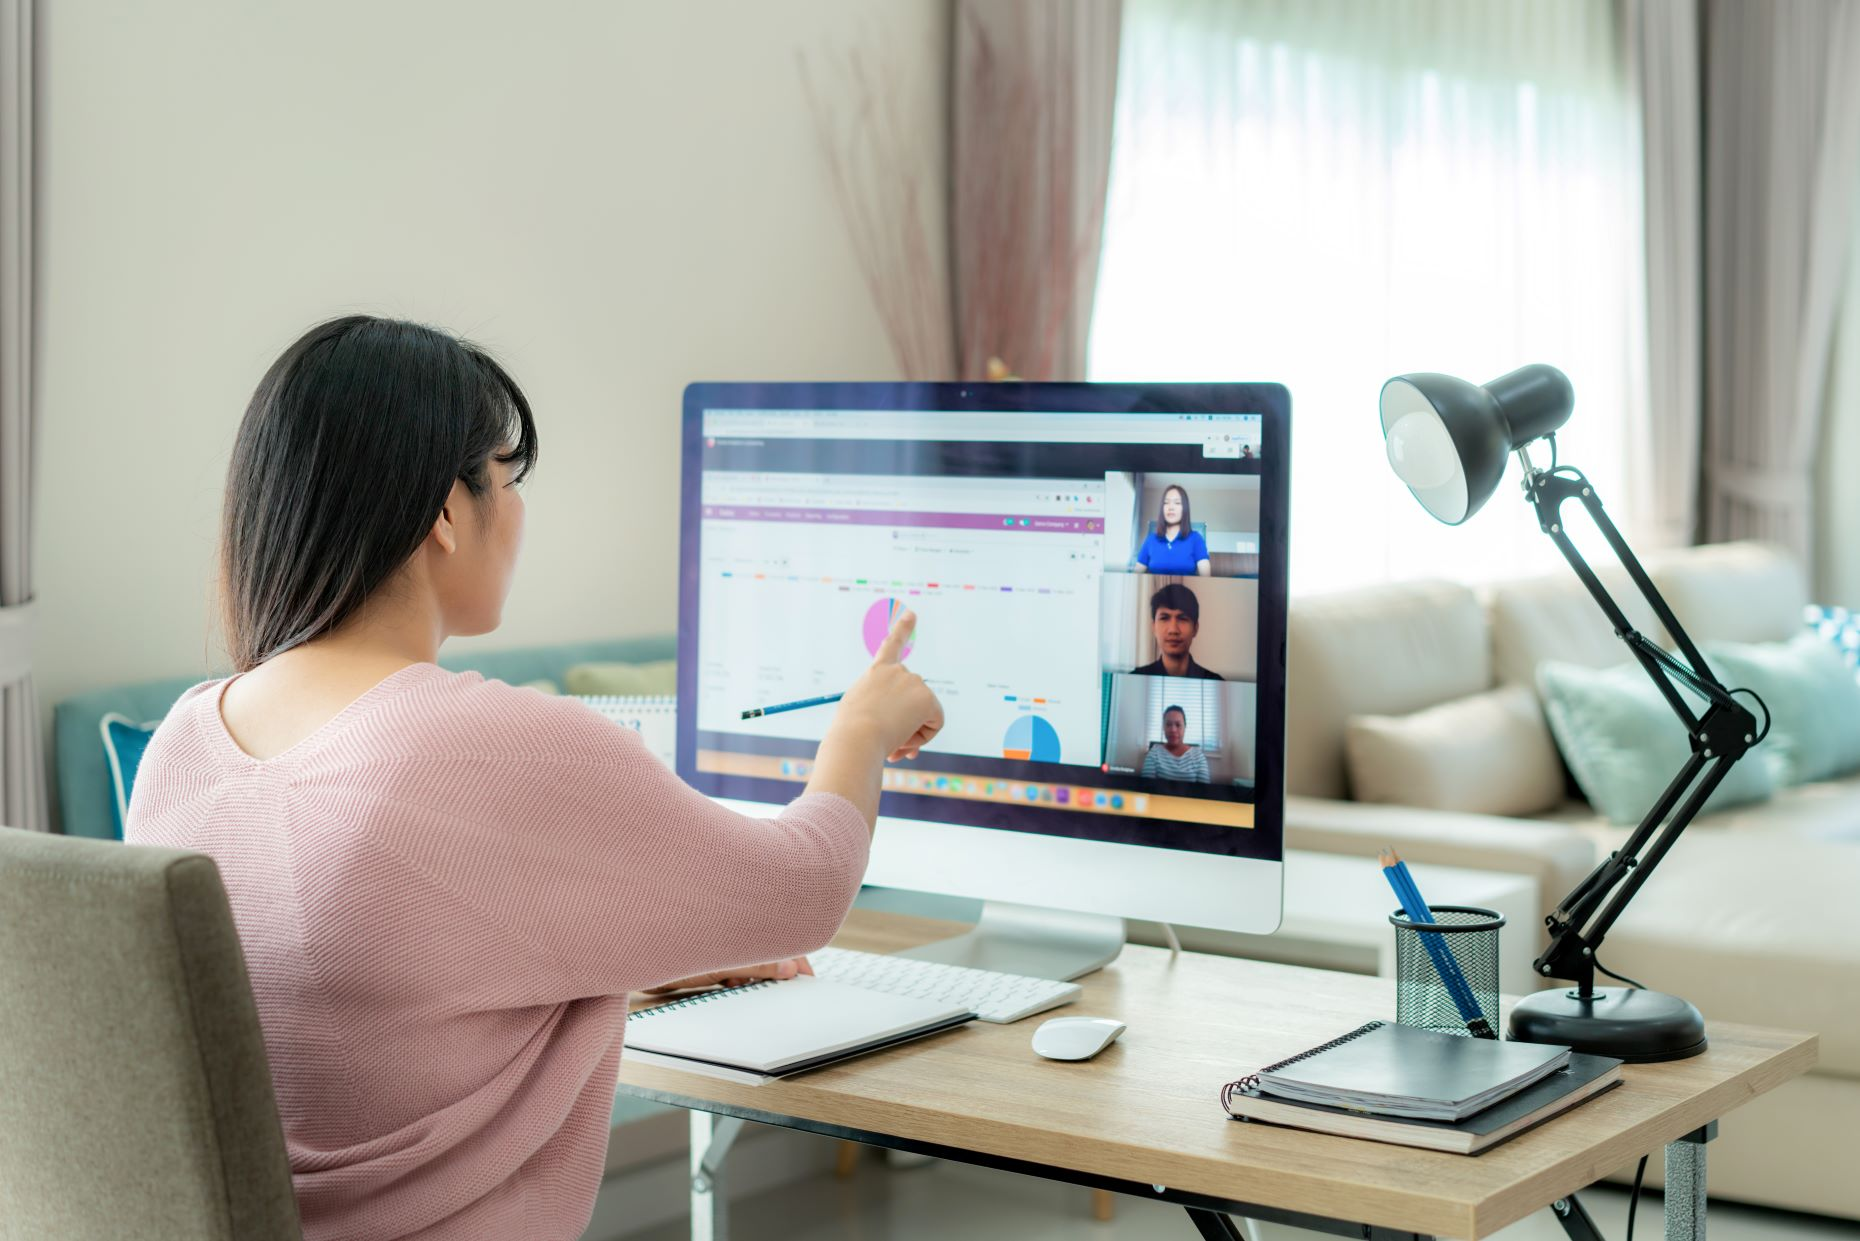 Woman participating in video conference call